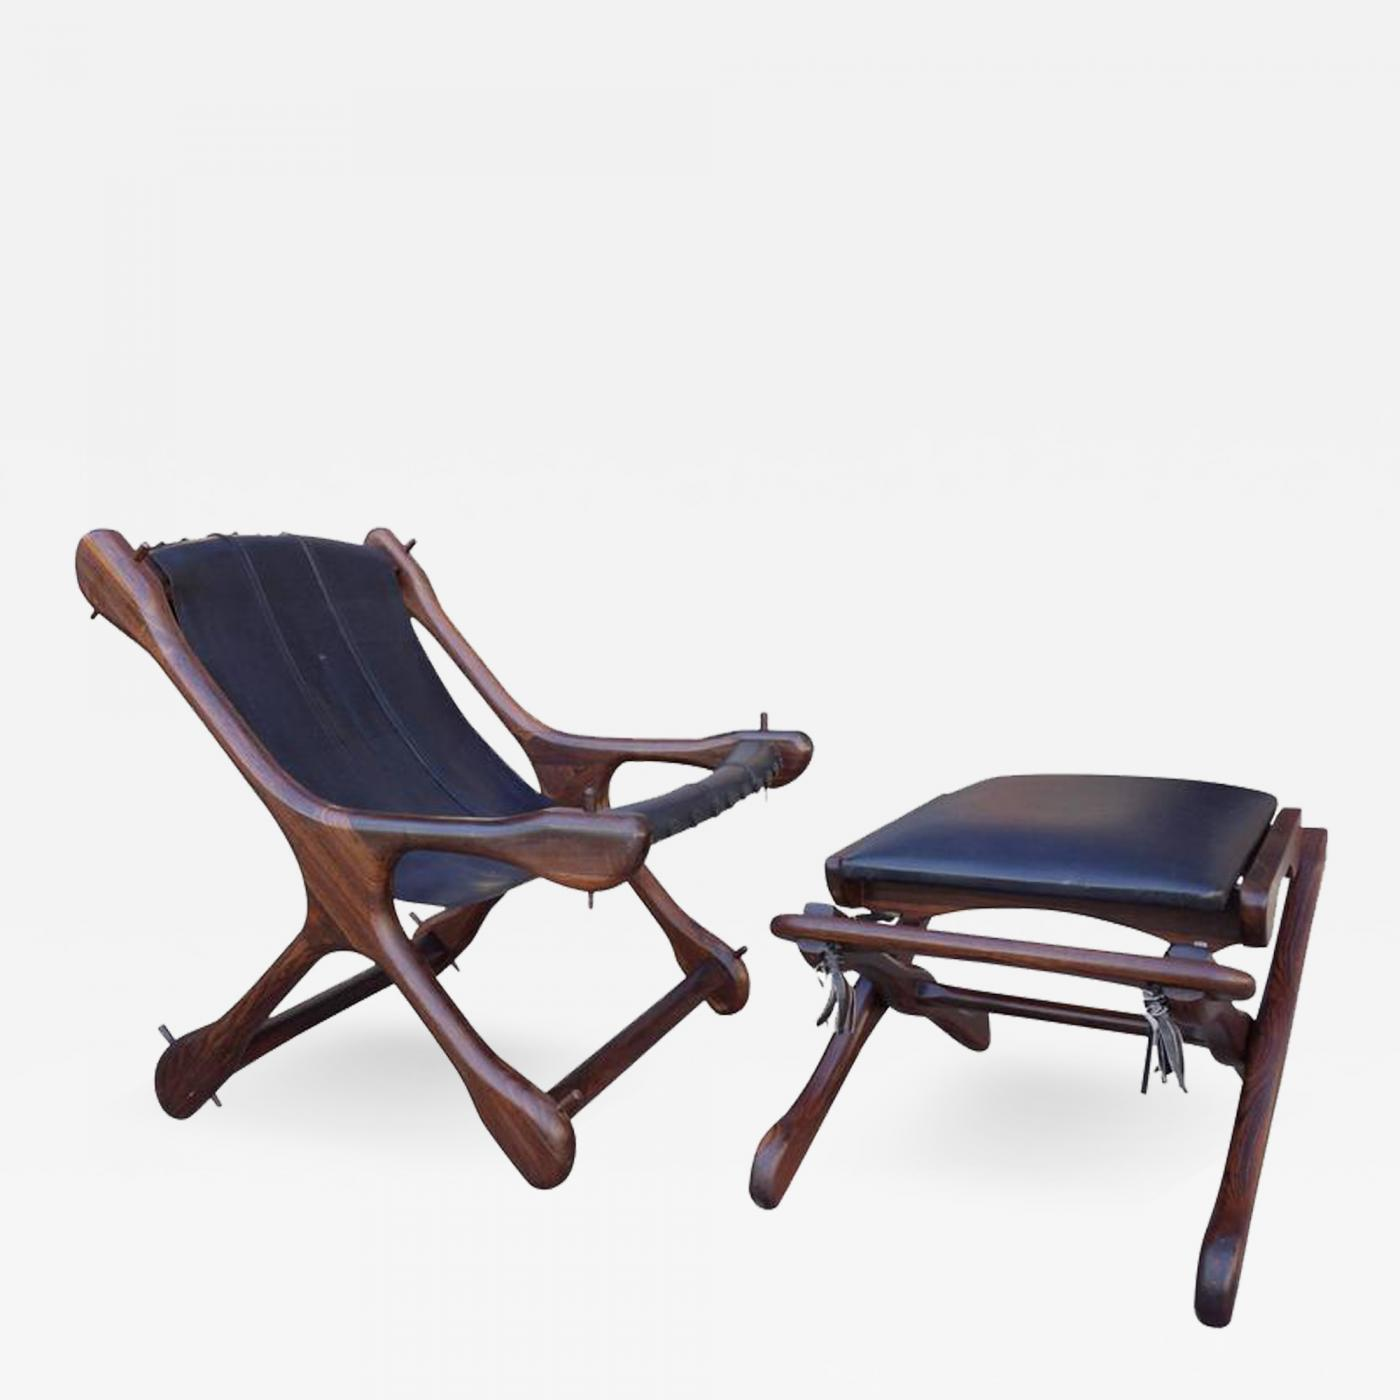 Marvelous Don Shoemaker Mid Century Don Shoemaker Leather Sling Chair And Ottoman In Rosewood Uwap Interior Chair Design Uwaporg